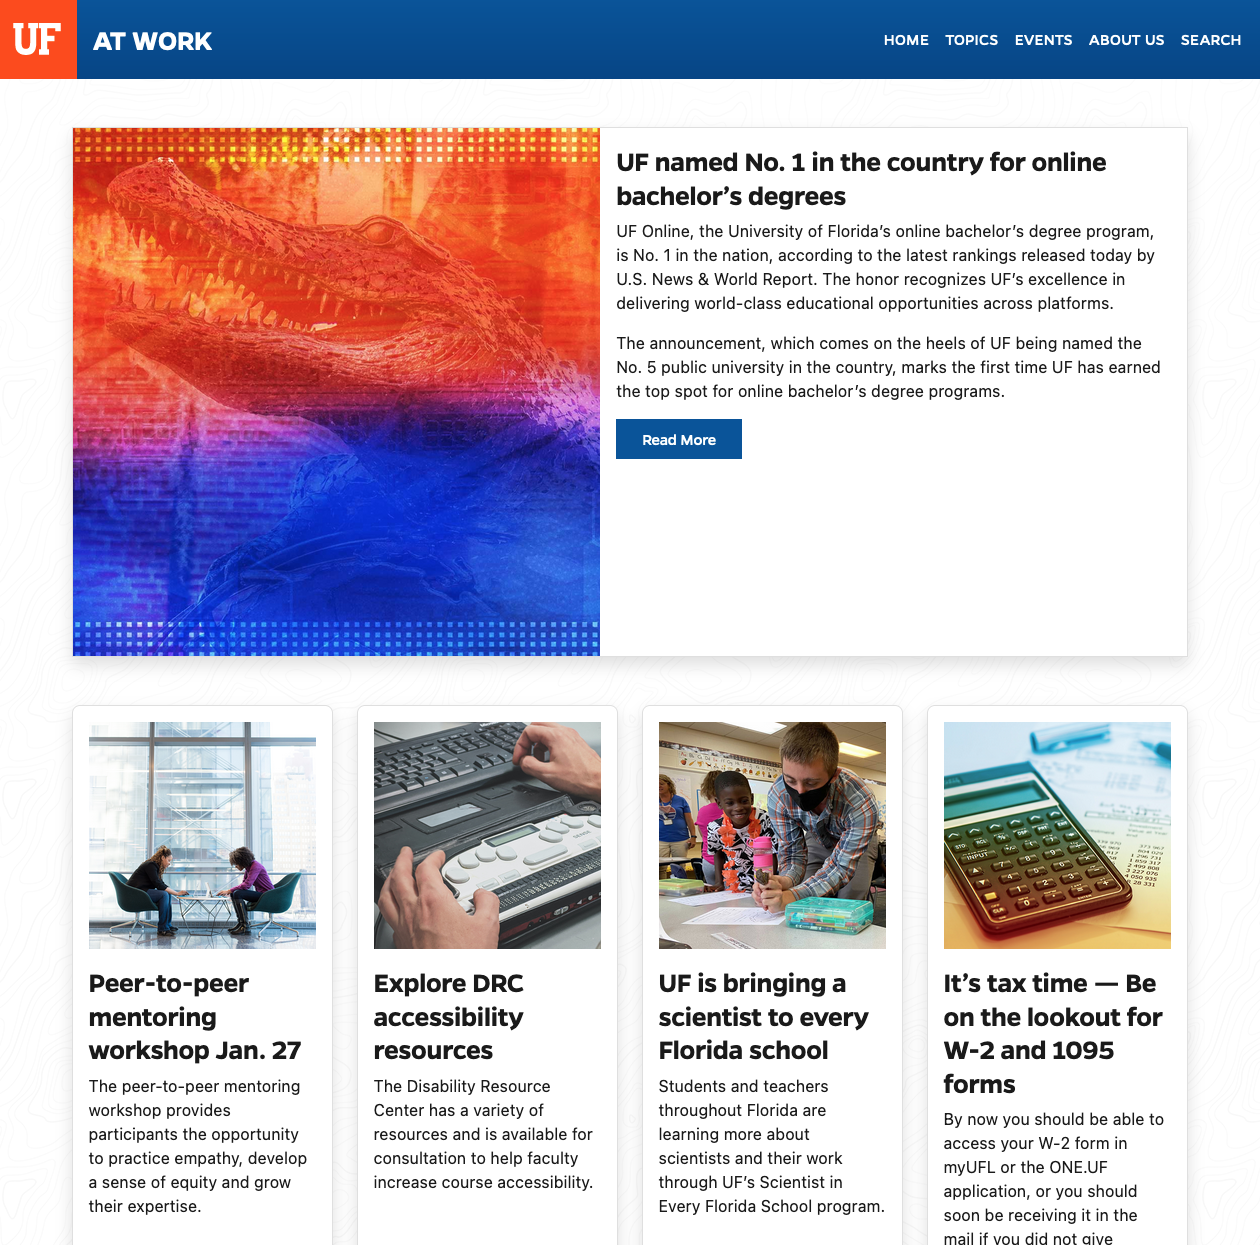 uf at work email with us news and world report ranking